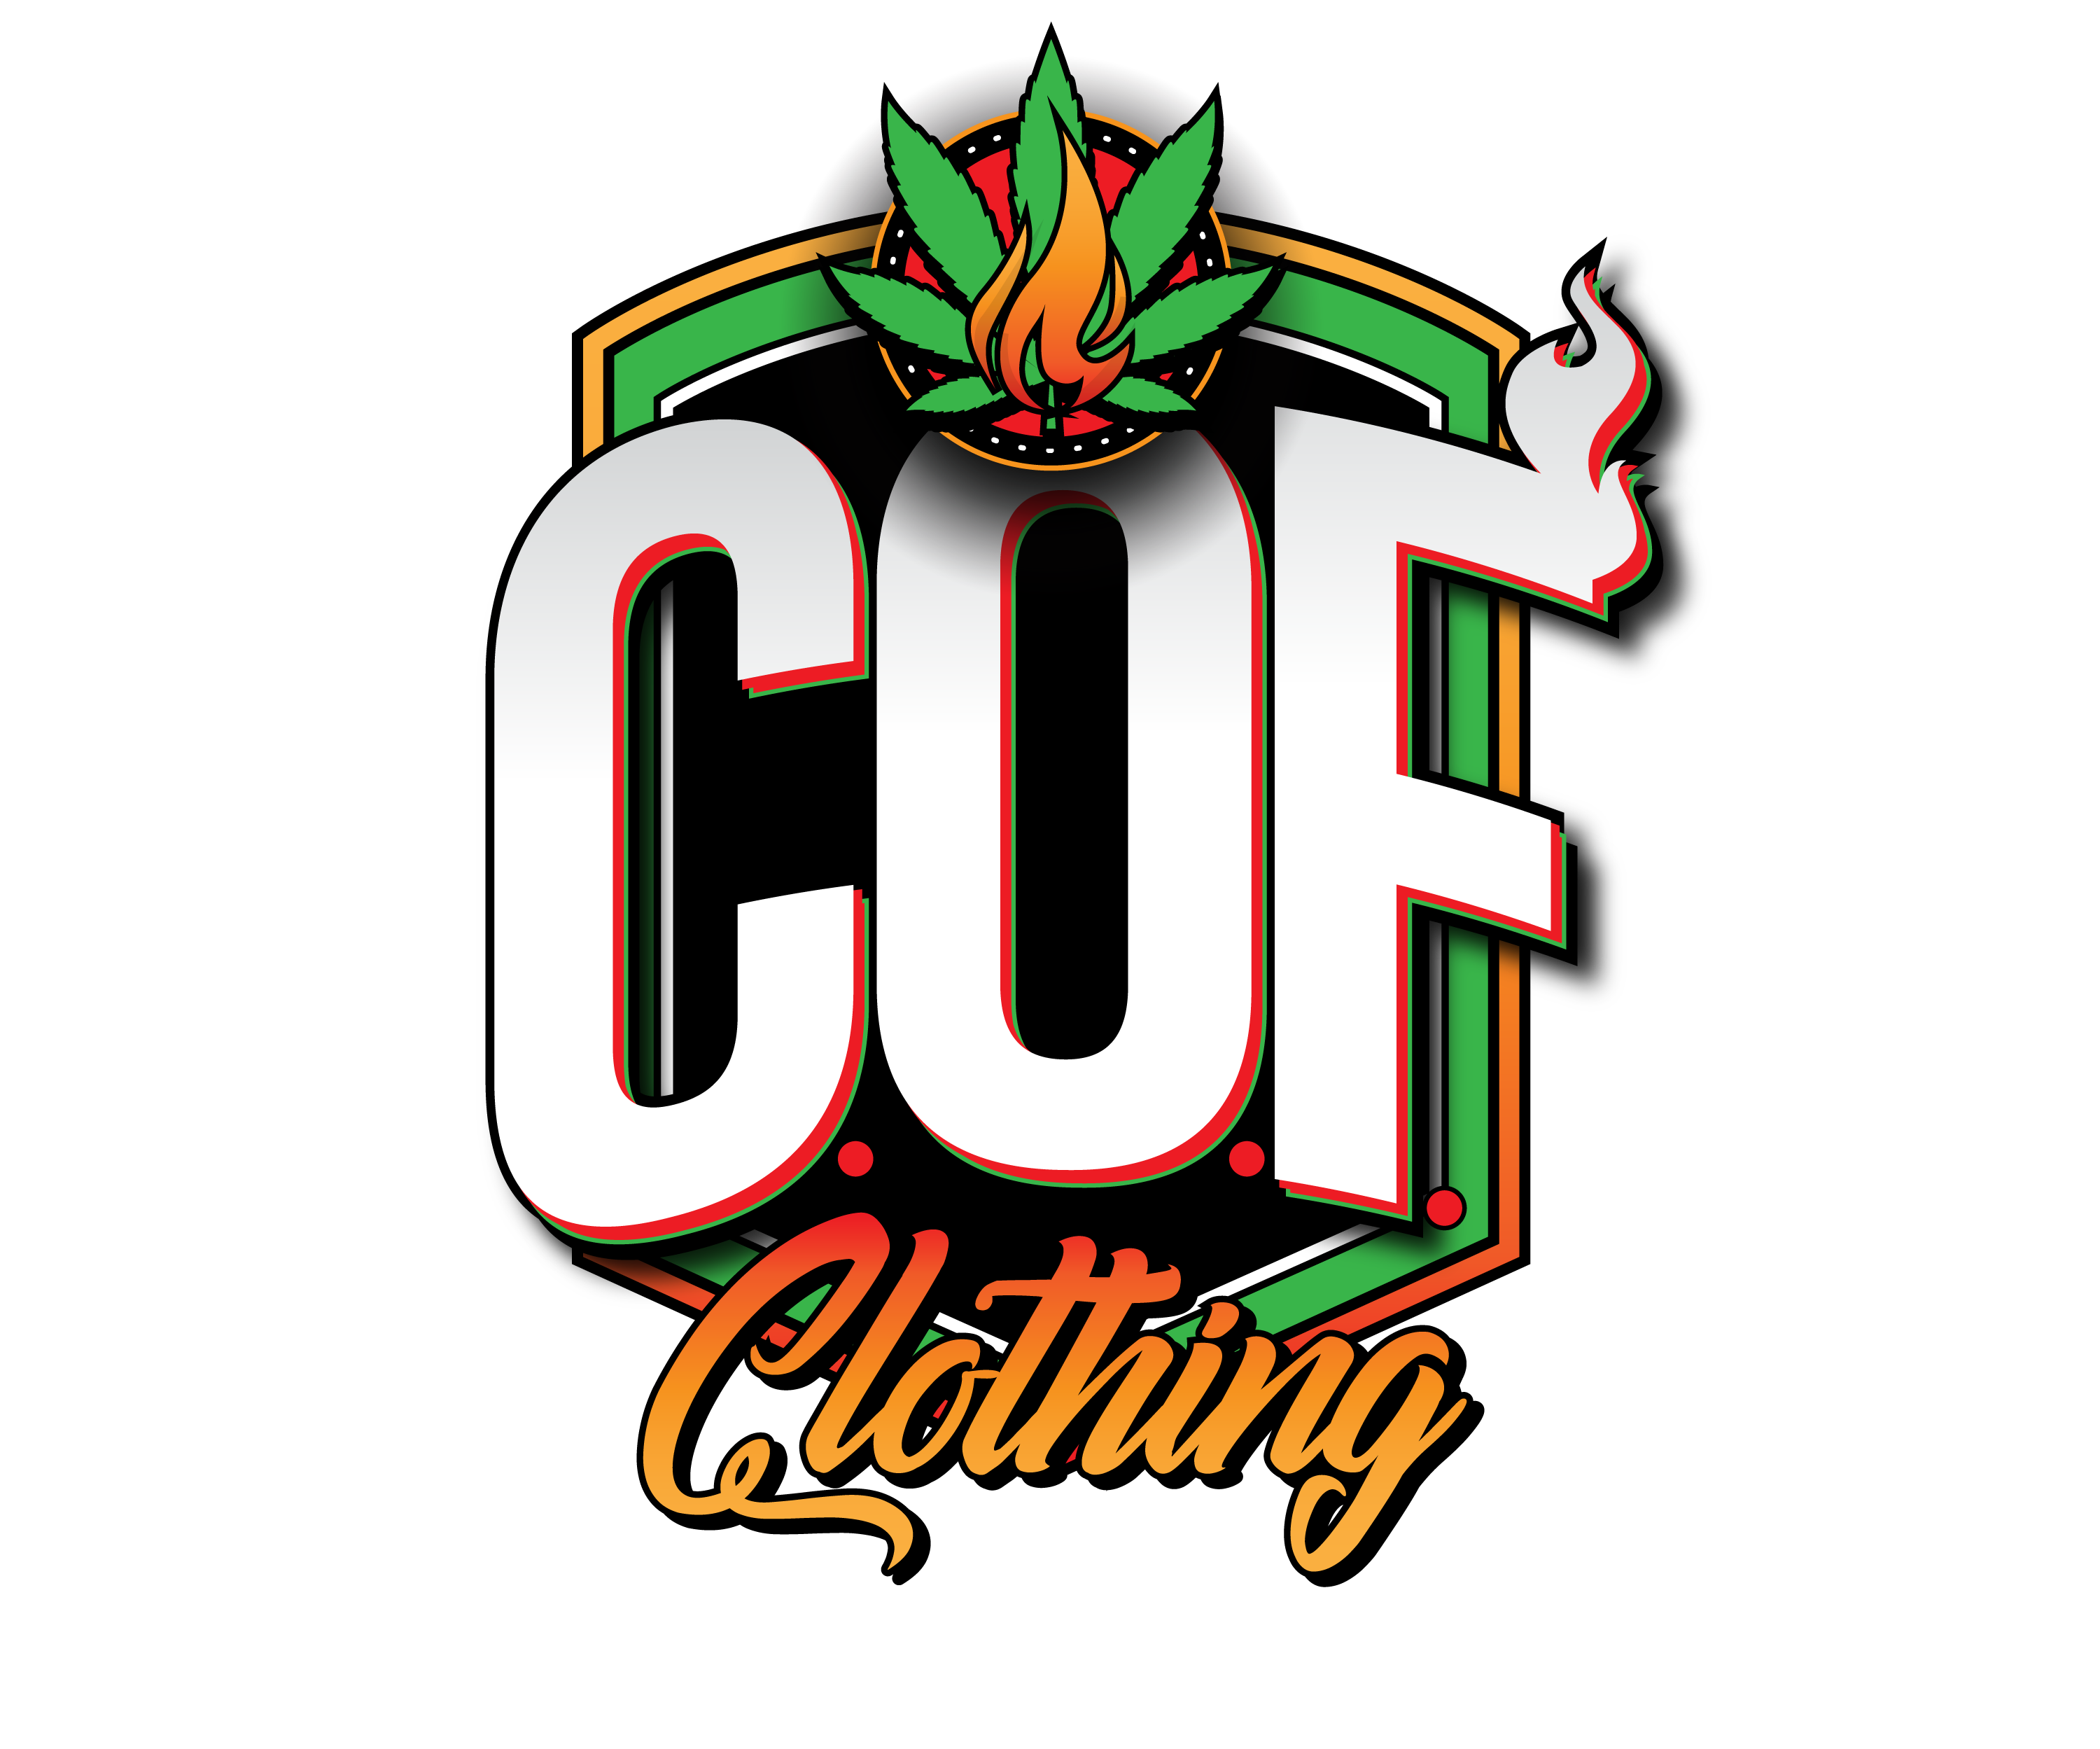 Clones On Fire Clothing